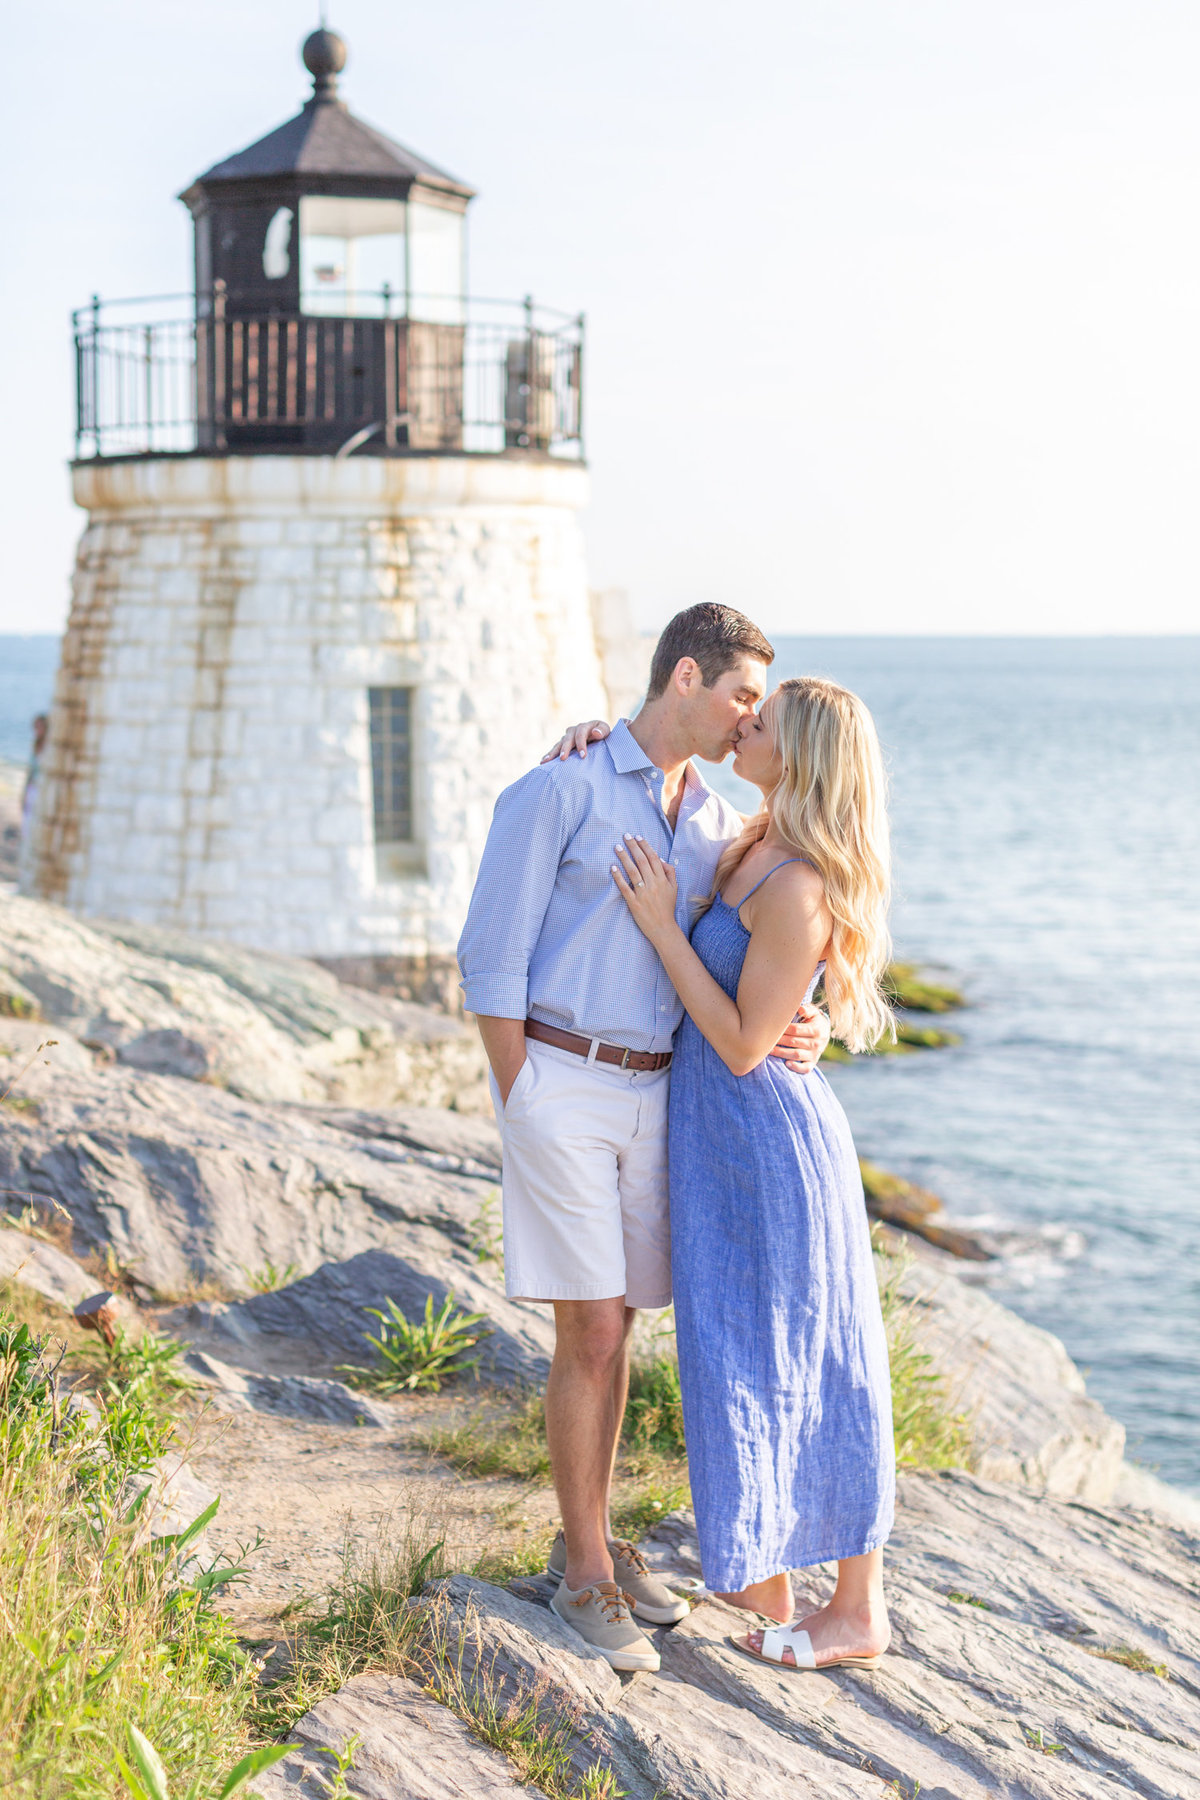 Laura-Klacik-Photography-Engagement-Photos-30-2